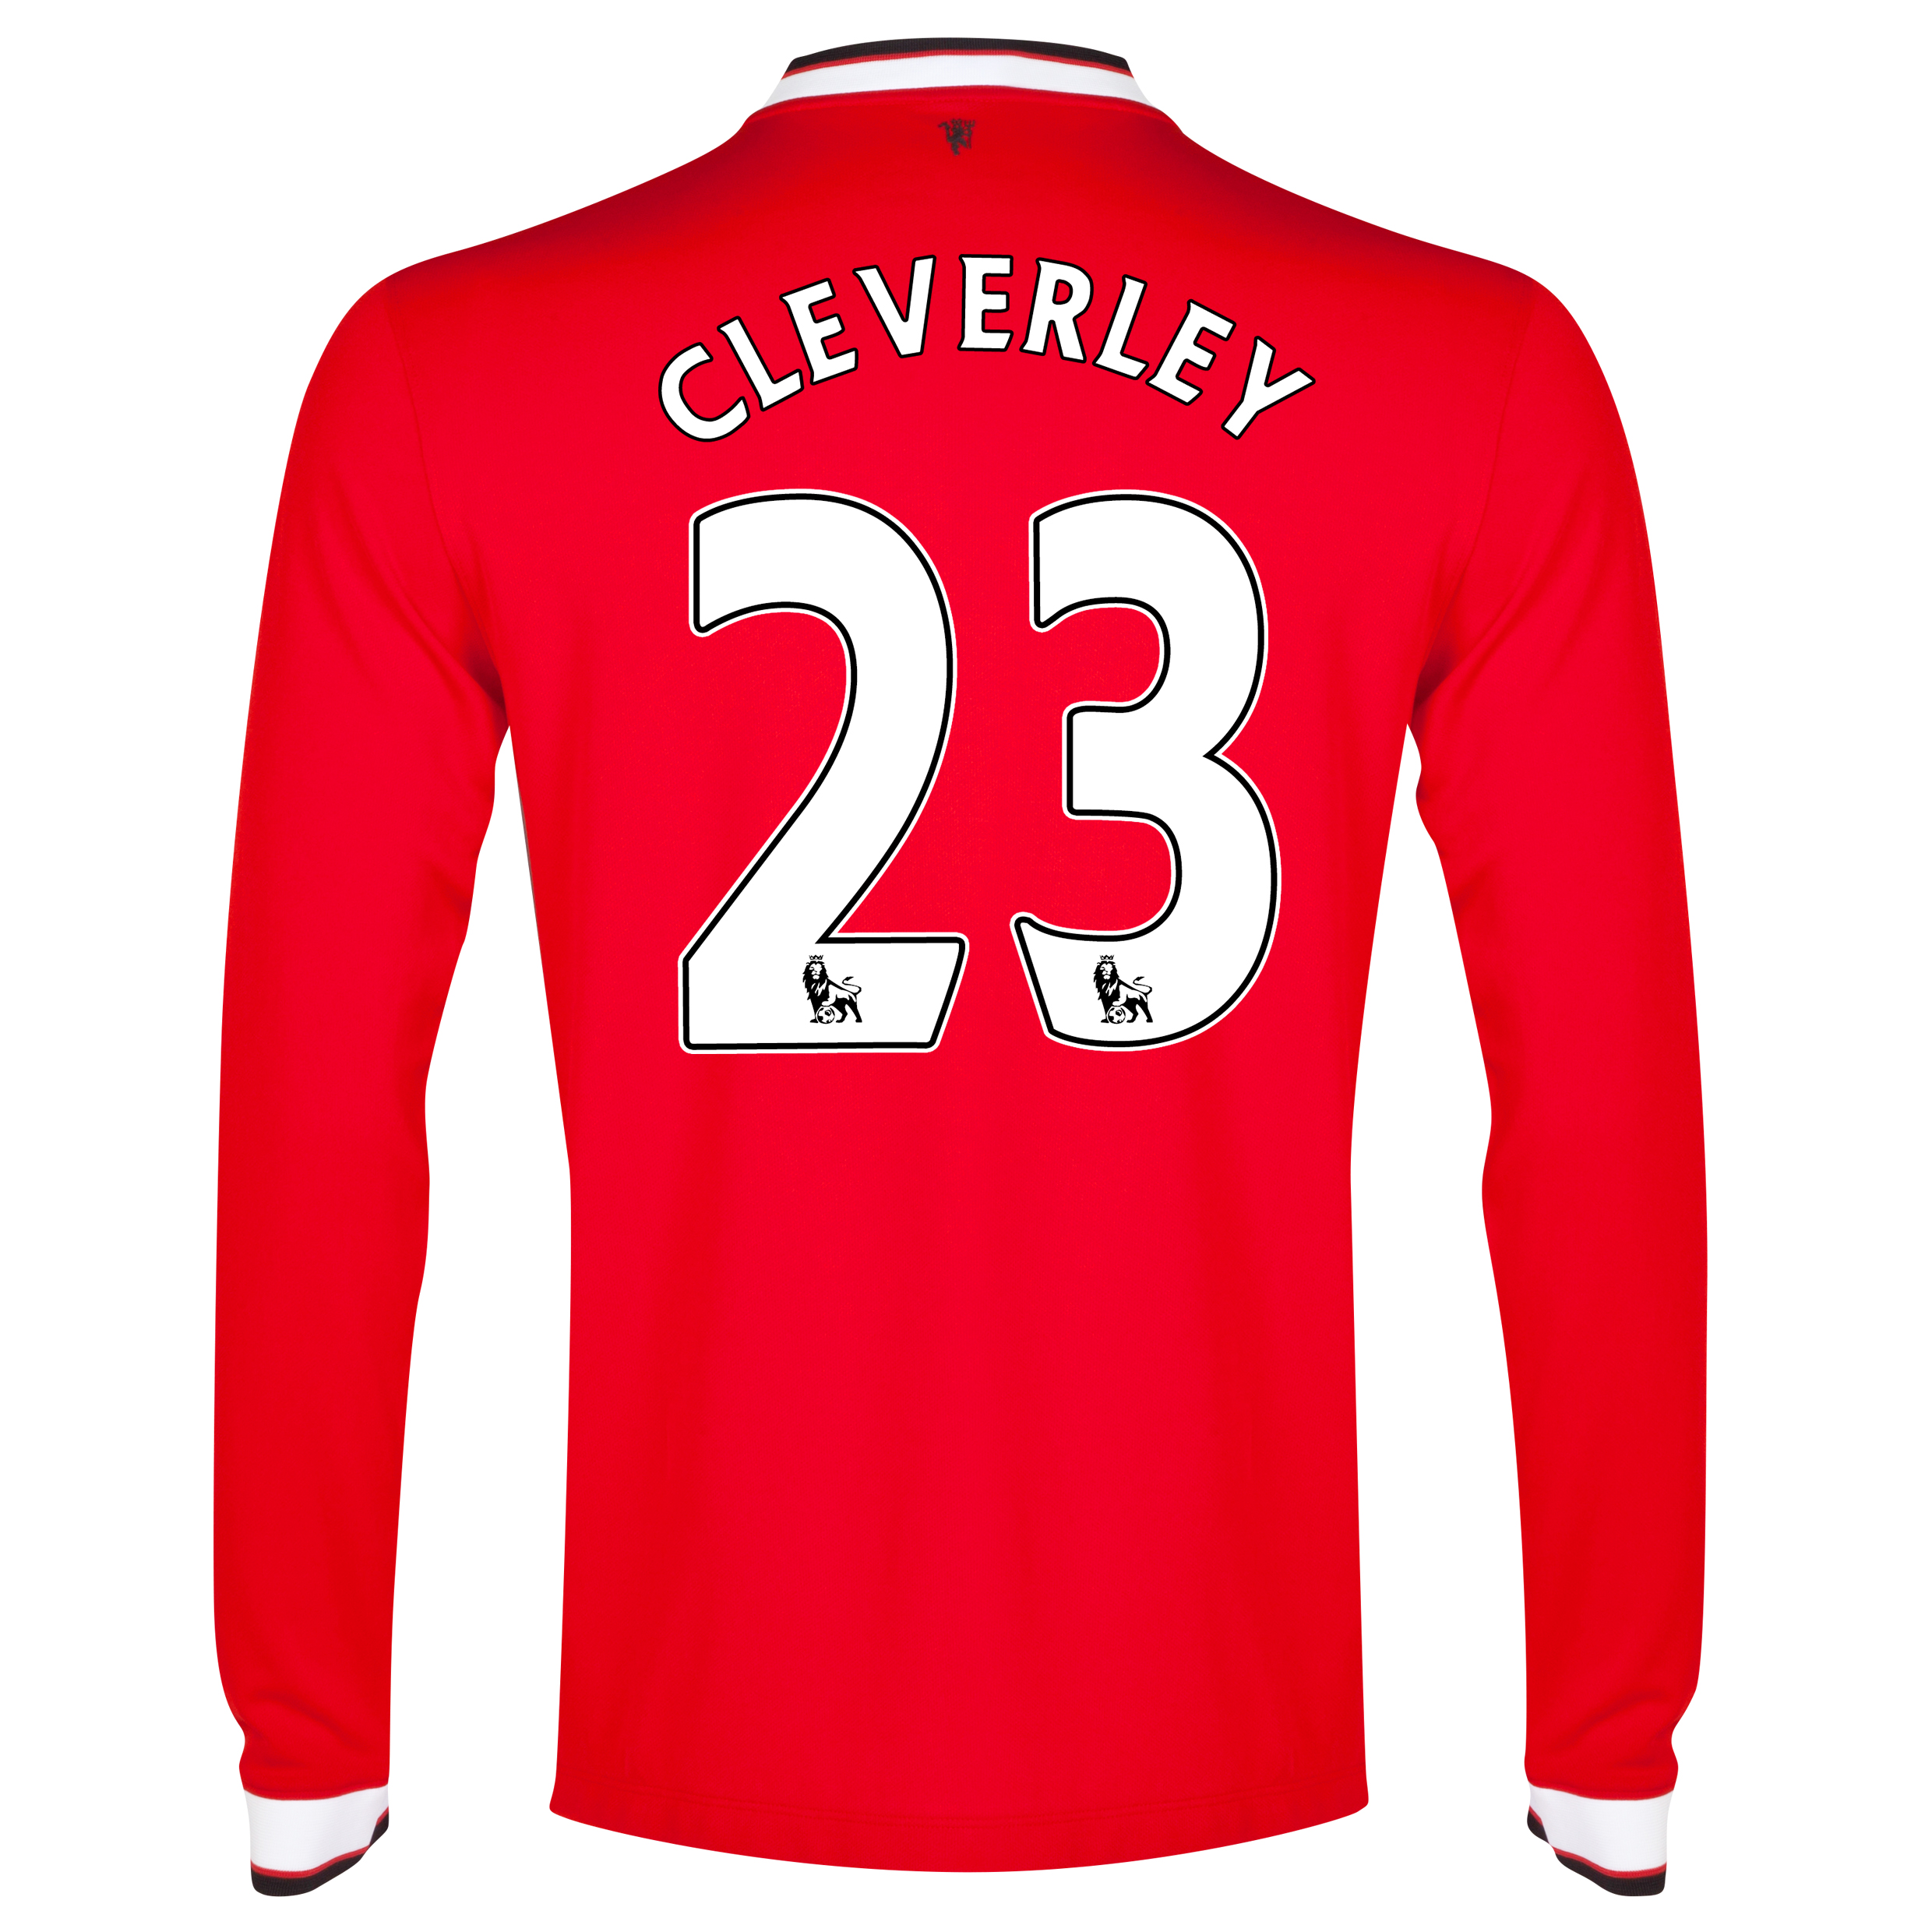 Manchester United Home Shirt 2014/15 - Long Sleeve - Kids Red with Cleverley 23 printing